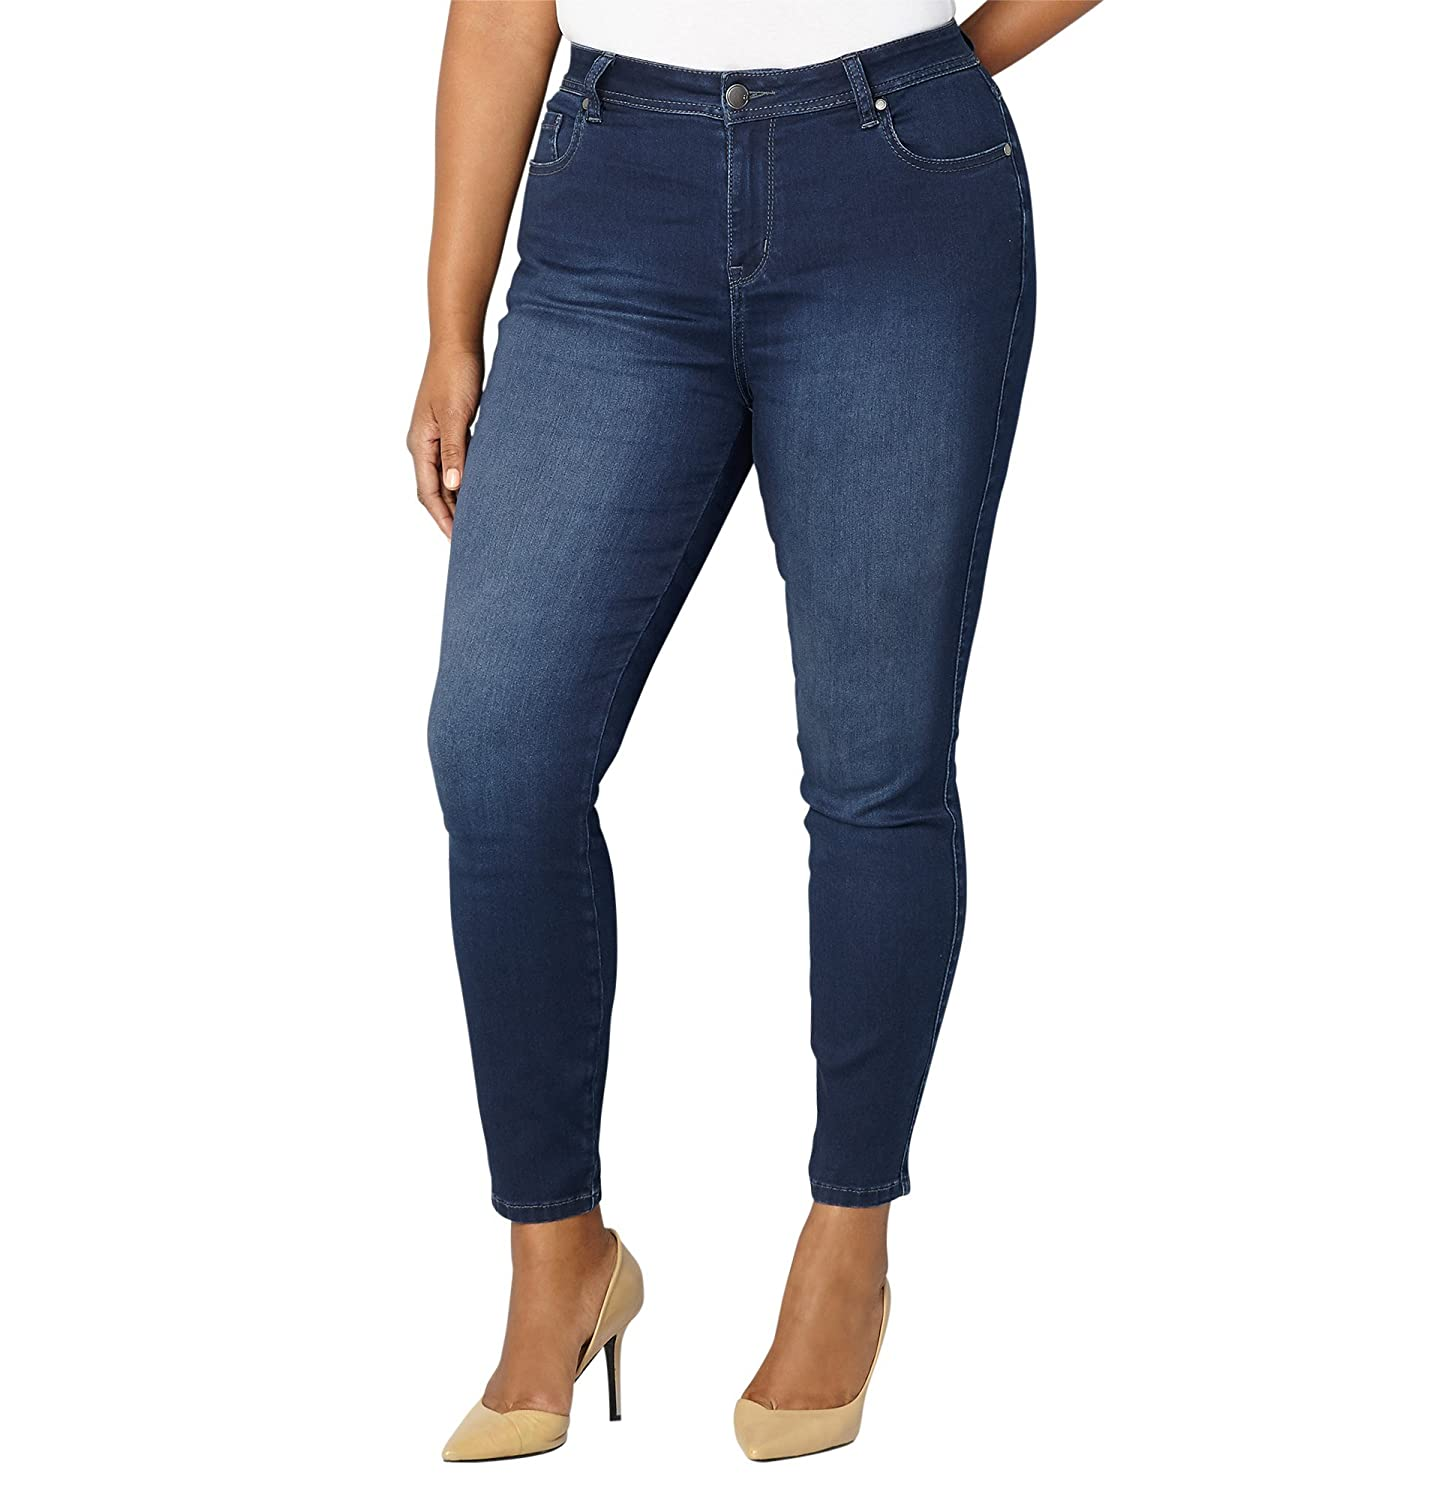 f1783de8a0557 A dark jean never goes out of style. Grab the super-soft butter fabric and  increased stretch for a night out with the girls. Plus, the white interior  is ...